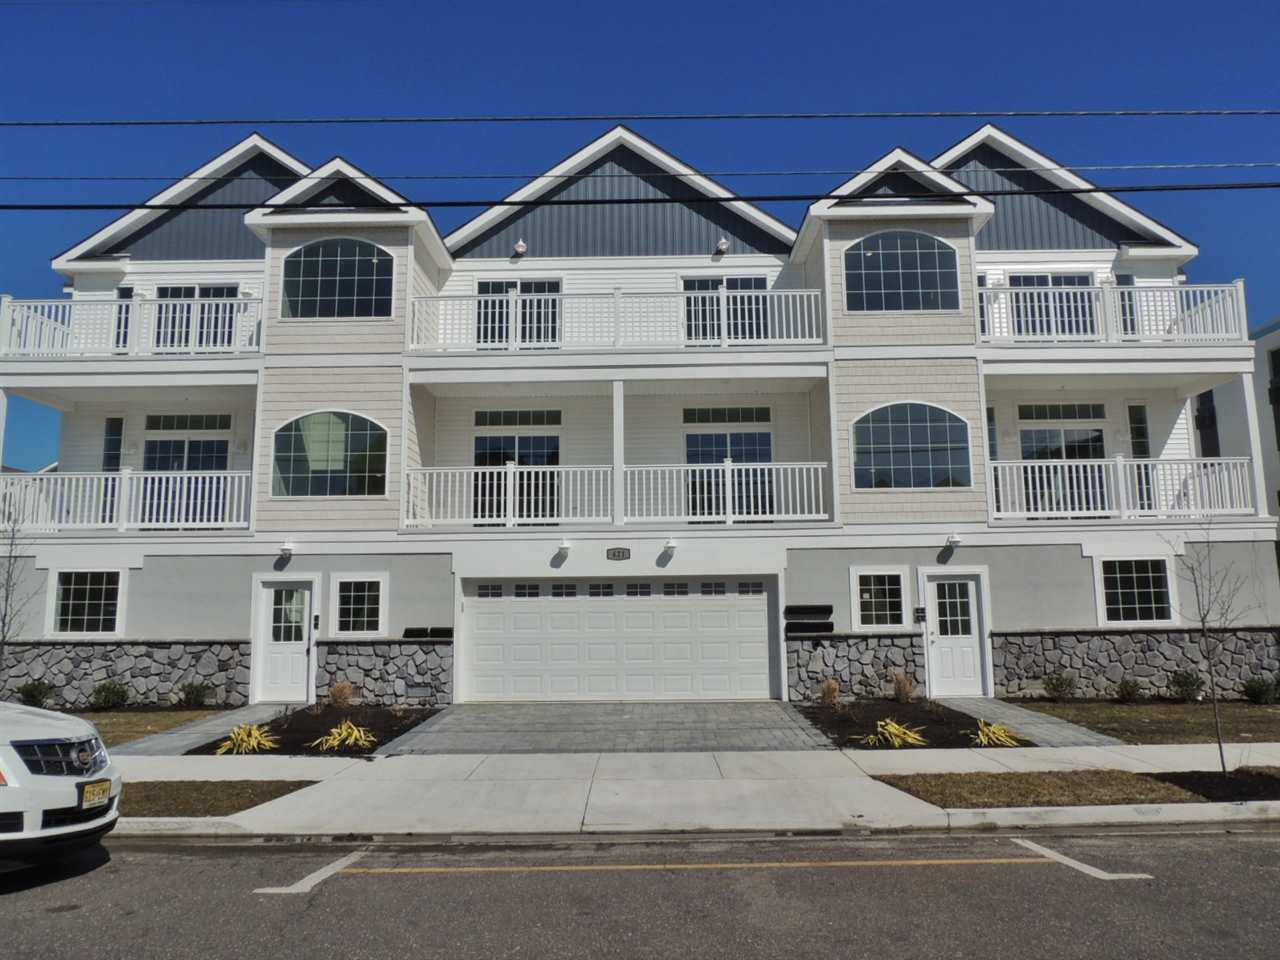 421, Unit 205 23rd Avenue, North Wildwood